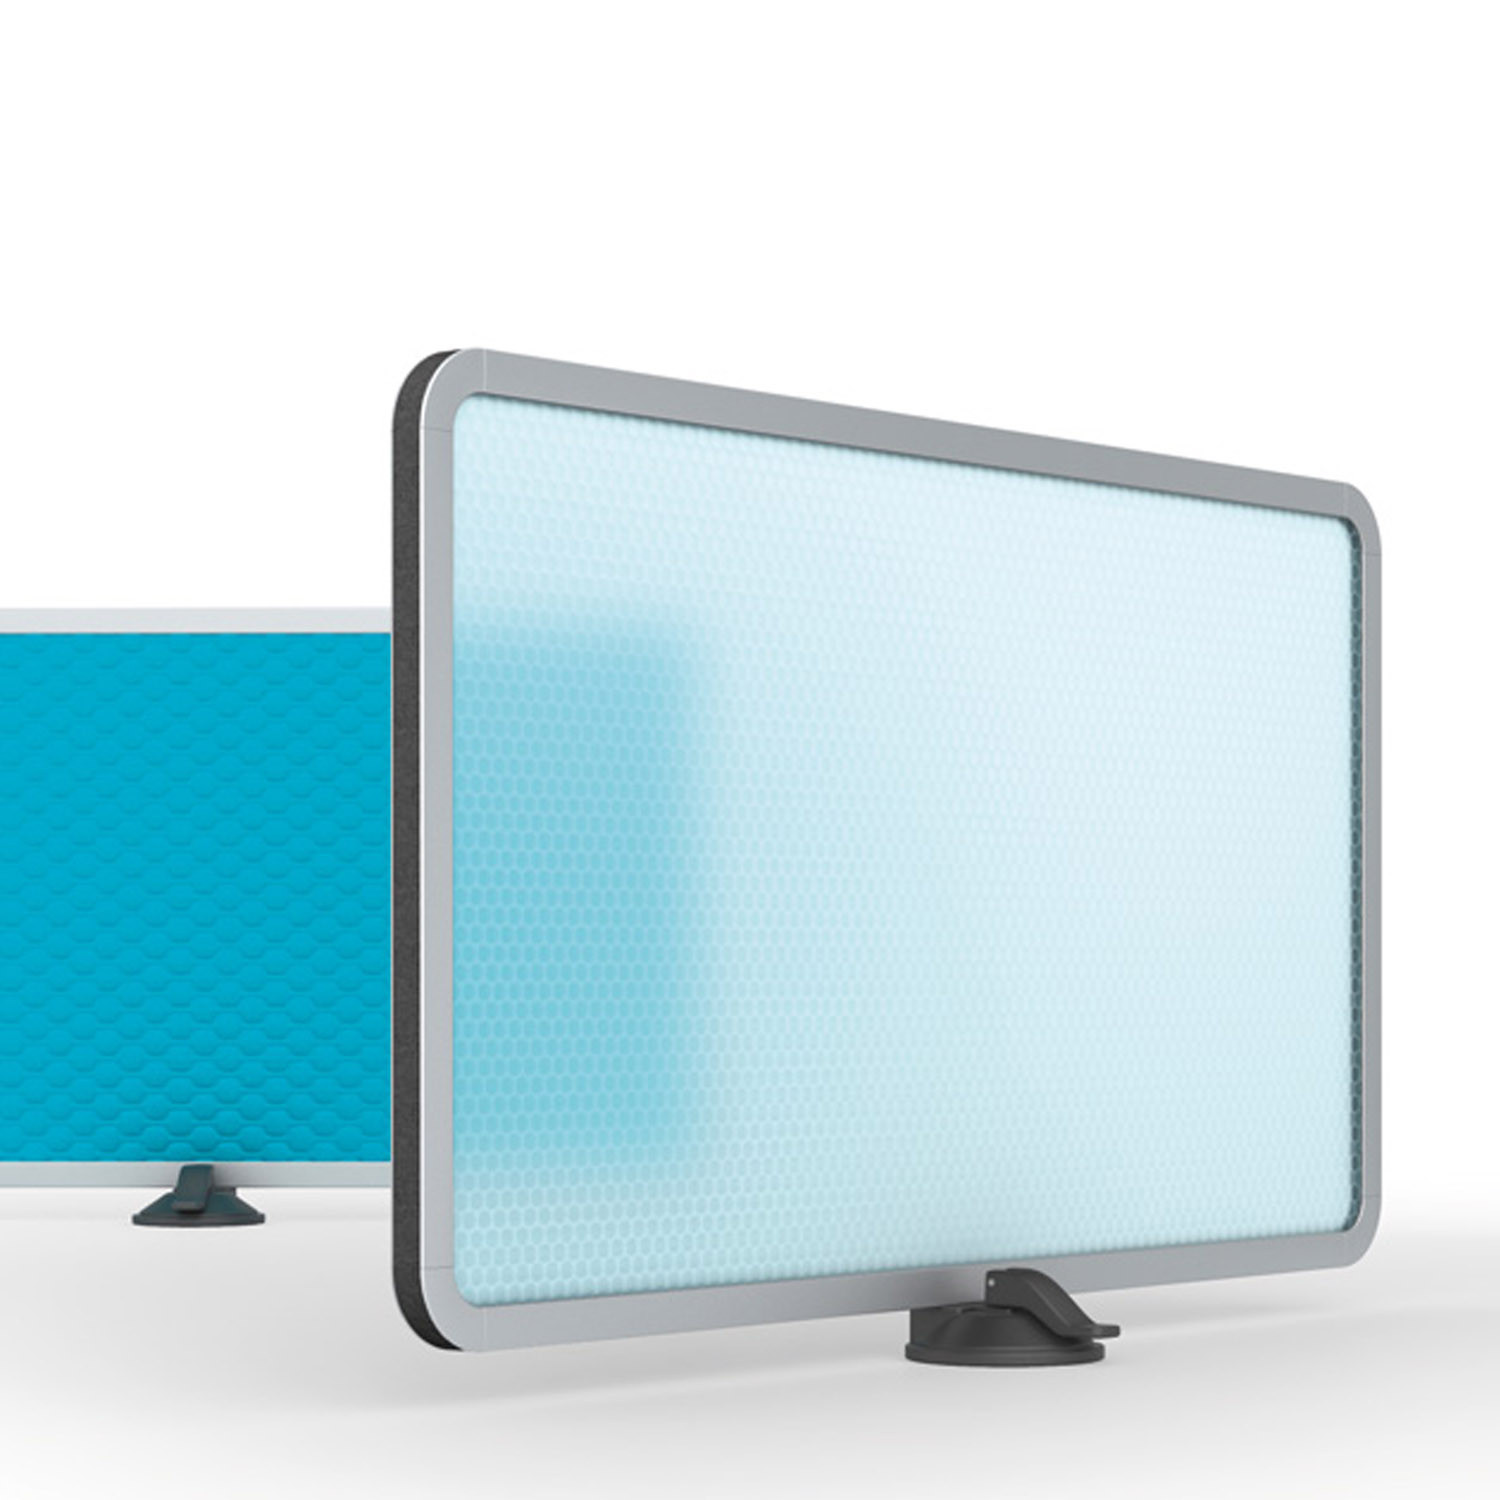 Keko Transculent Desk Screen by Mobica Plus